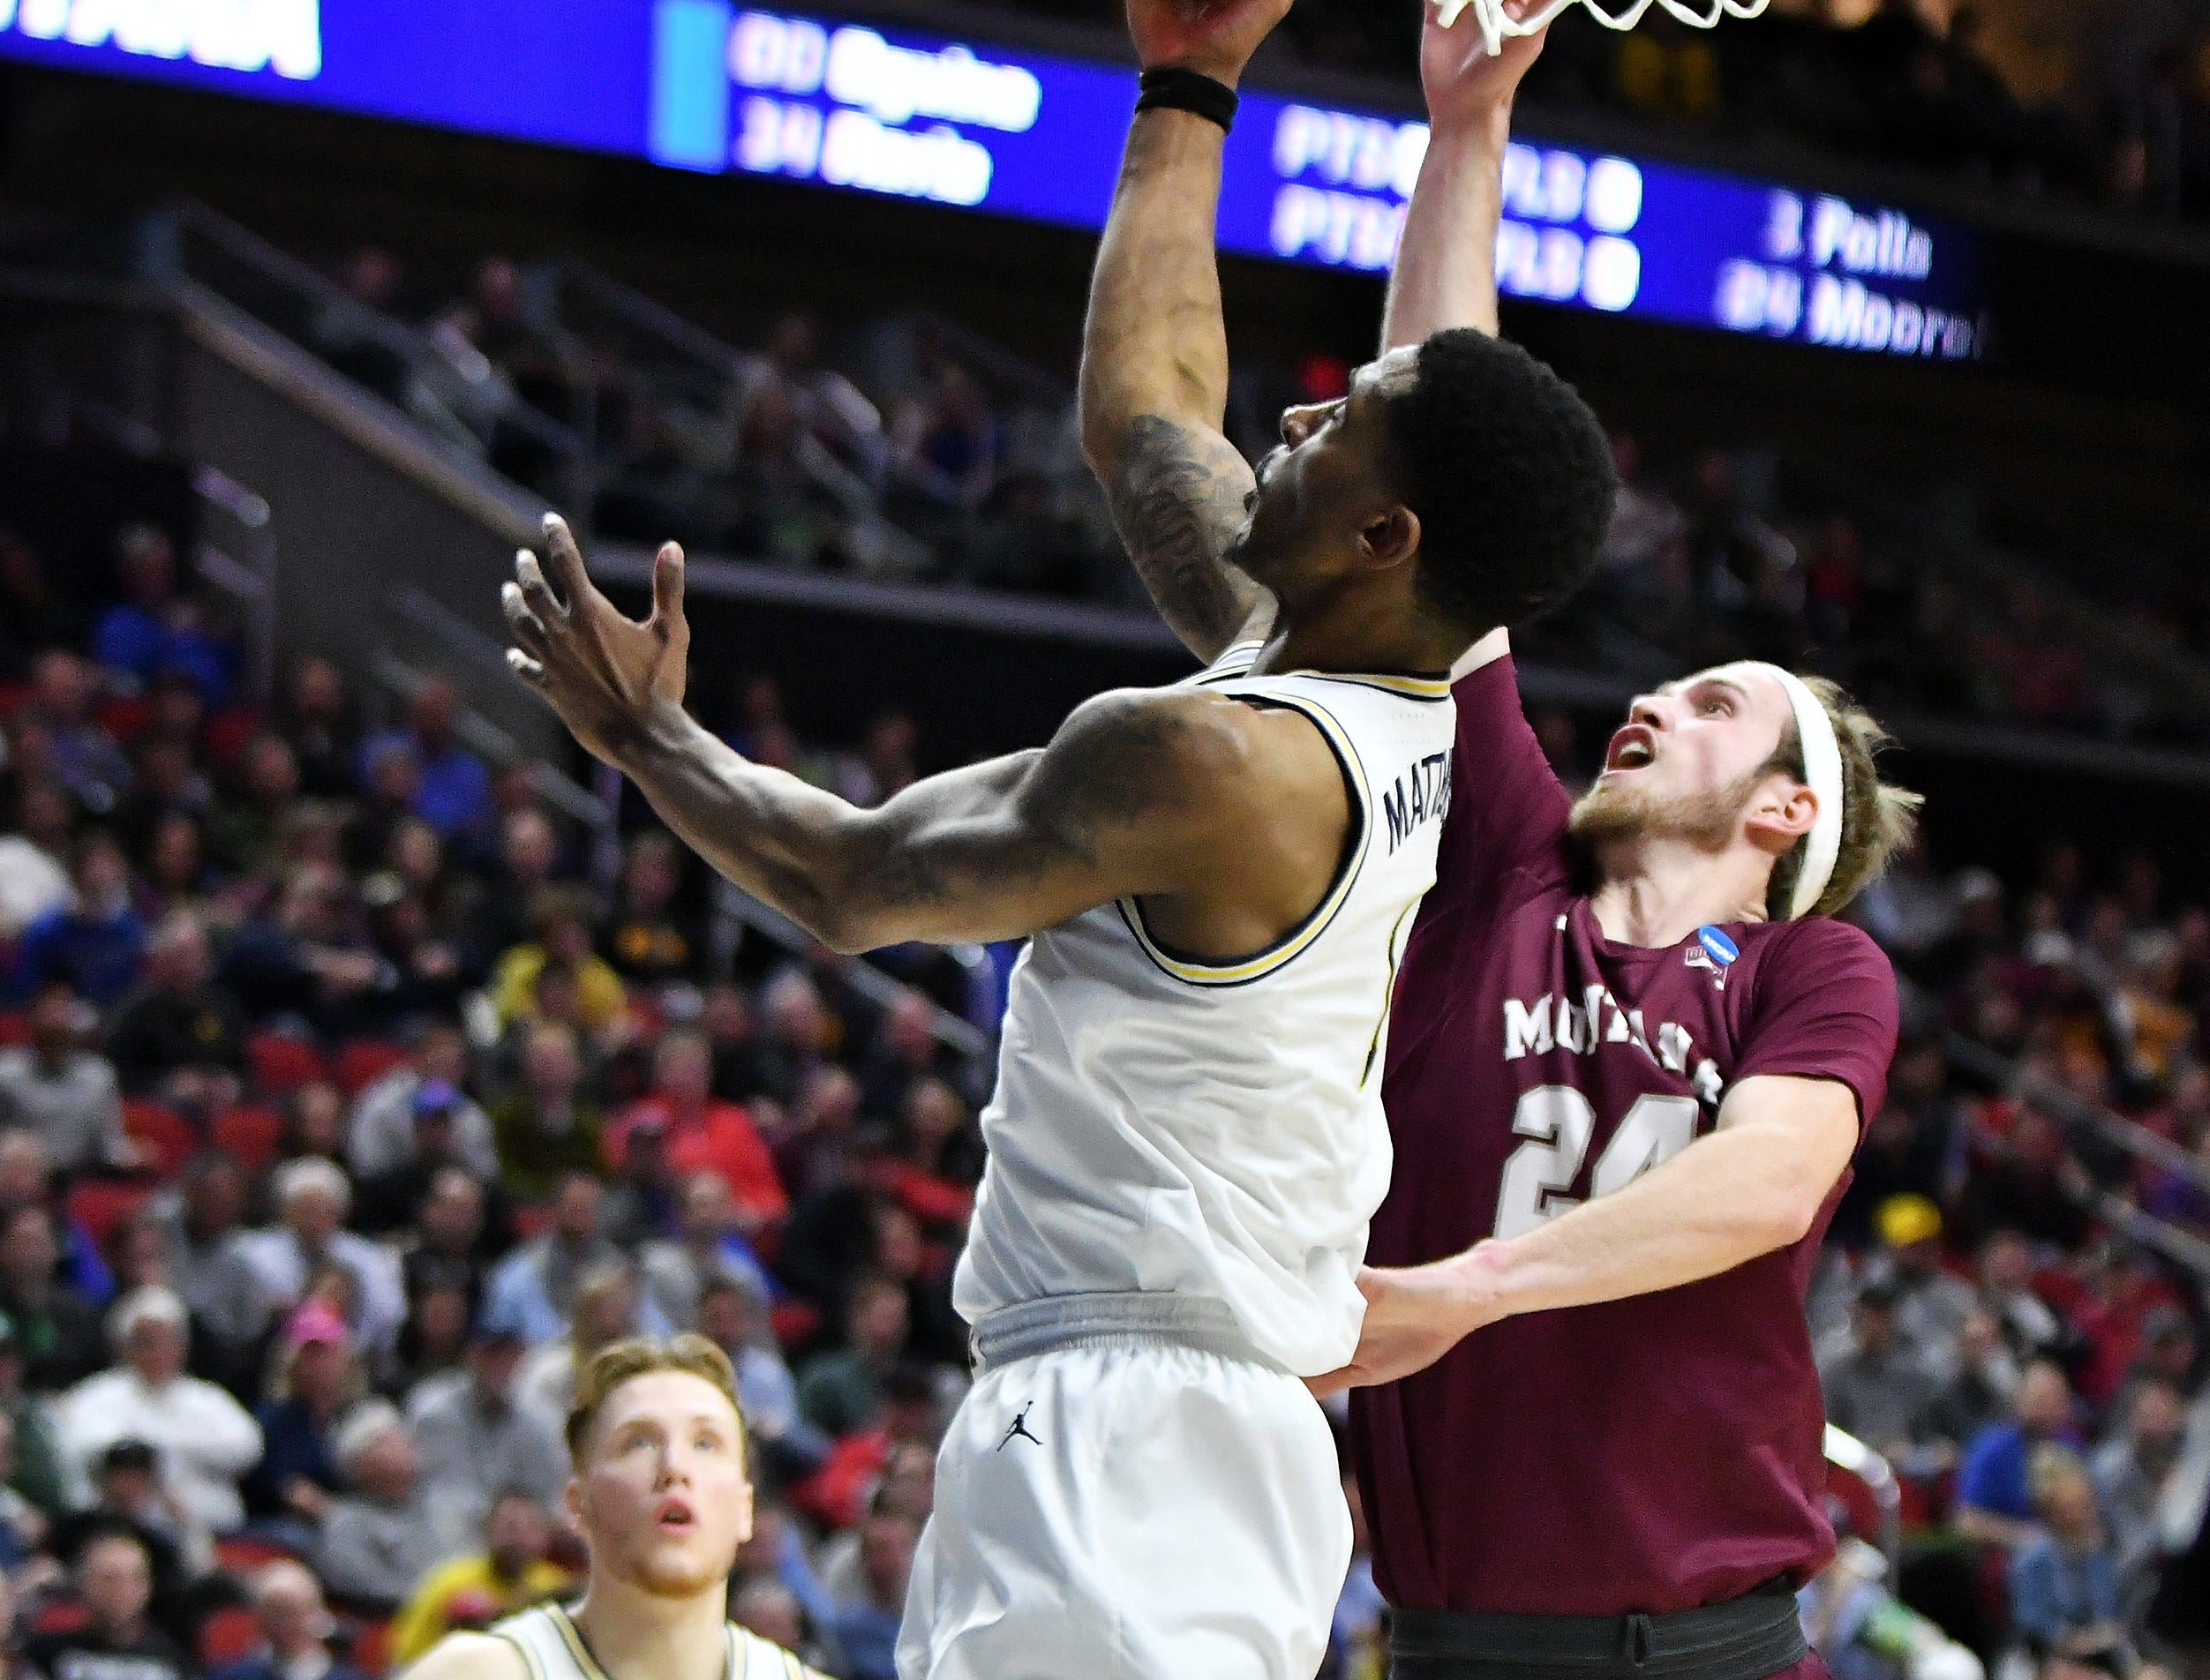 Montana guard Bobby Moorehead (24) defends a shot by Michigan guard Charles Matthews (1) in the first half.  Michigan vs Montana for Round 1 of the NCAA Tournament at Wells Fargo Arena in Des Moines, Iowa.